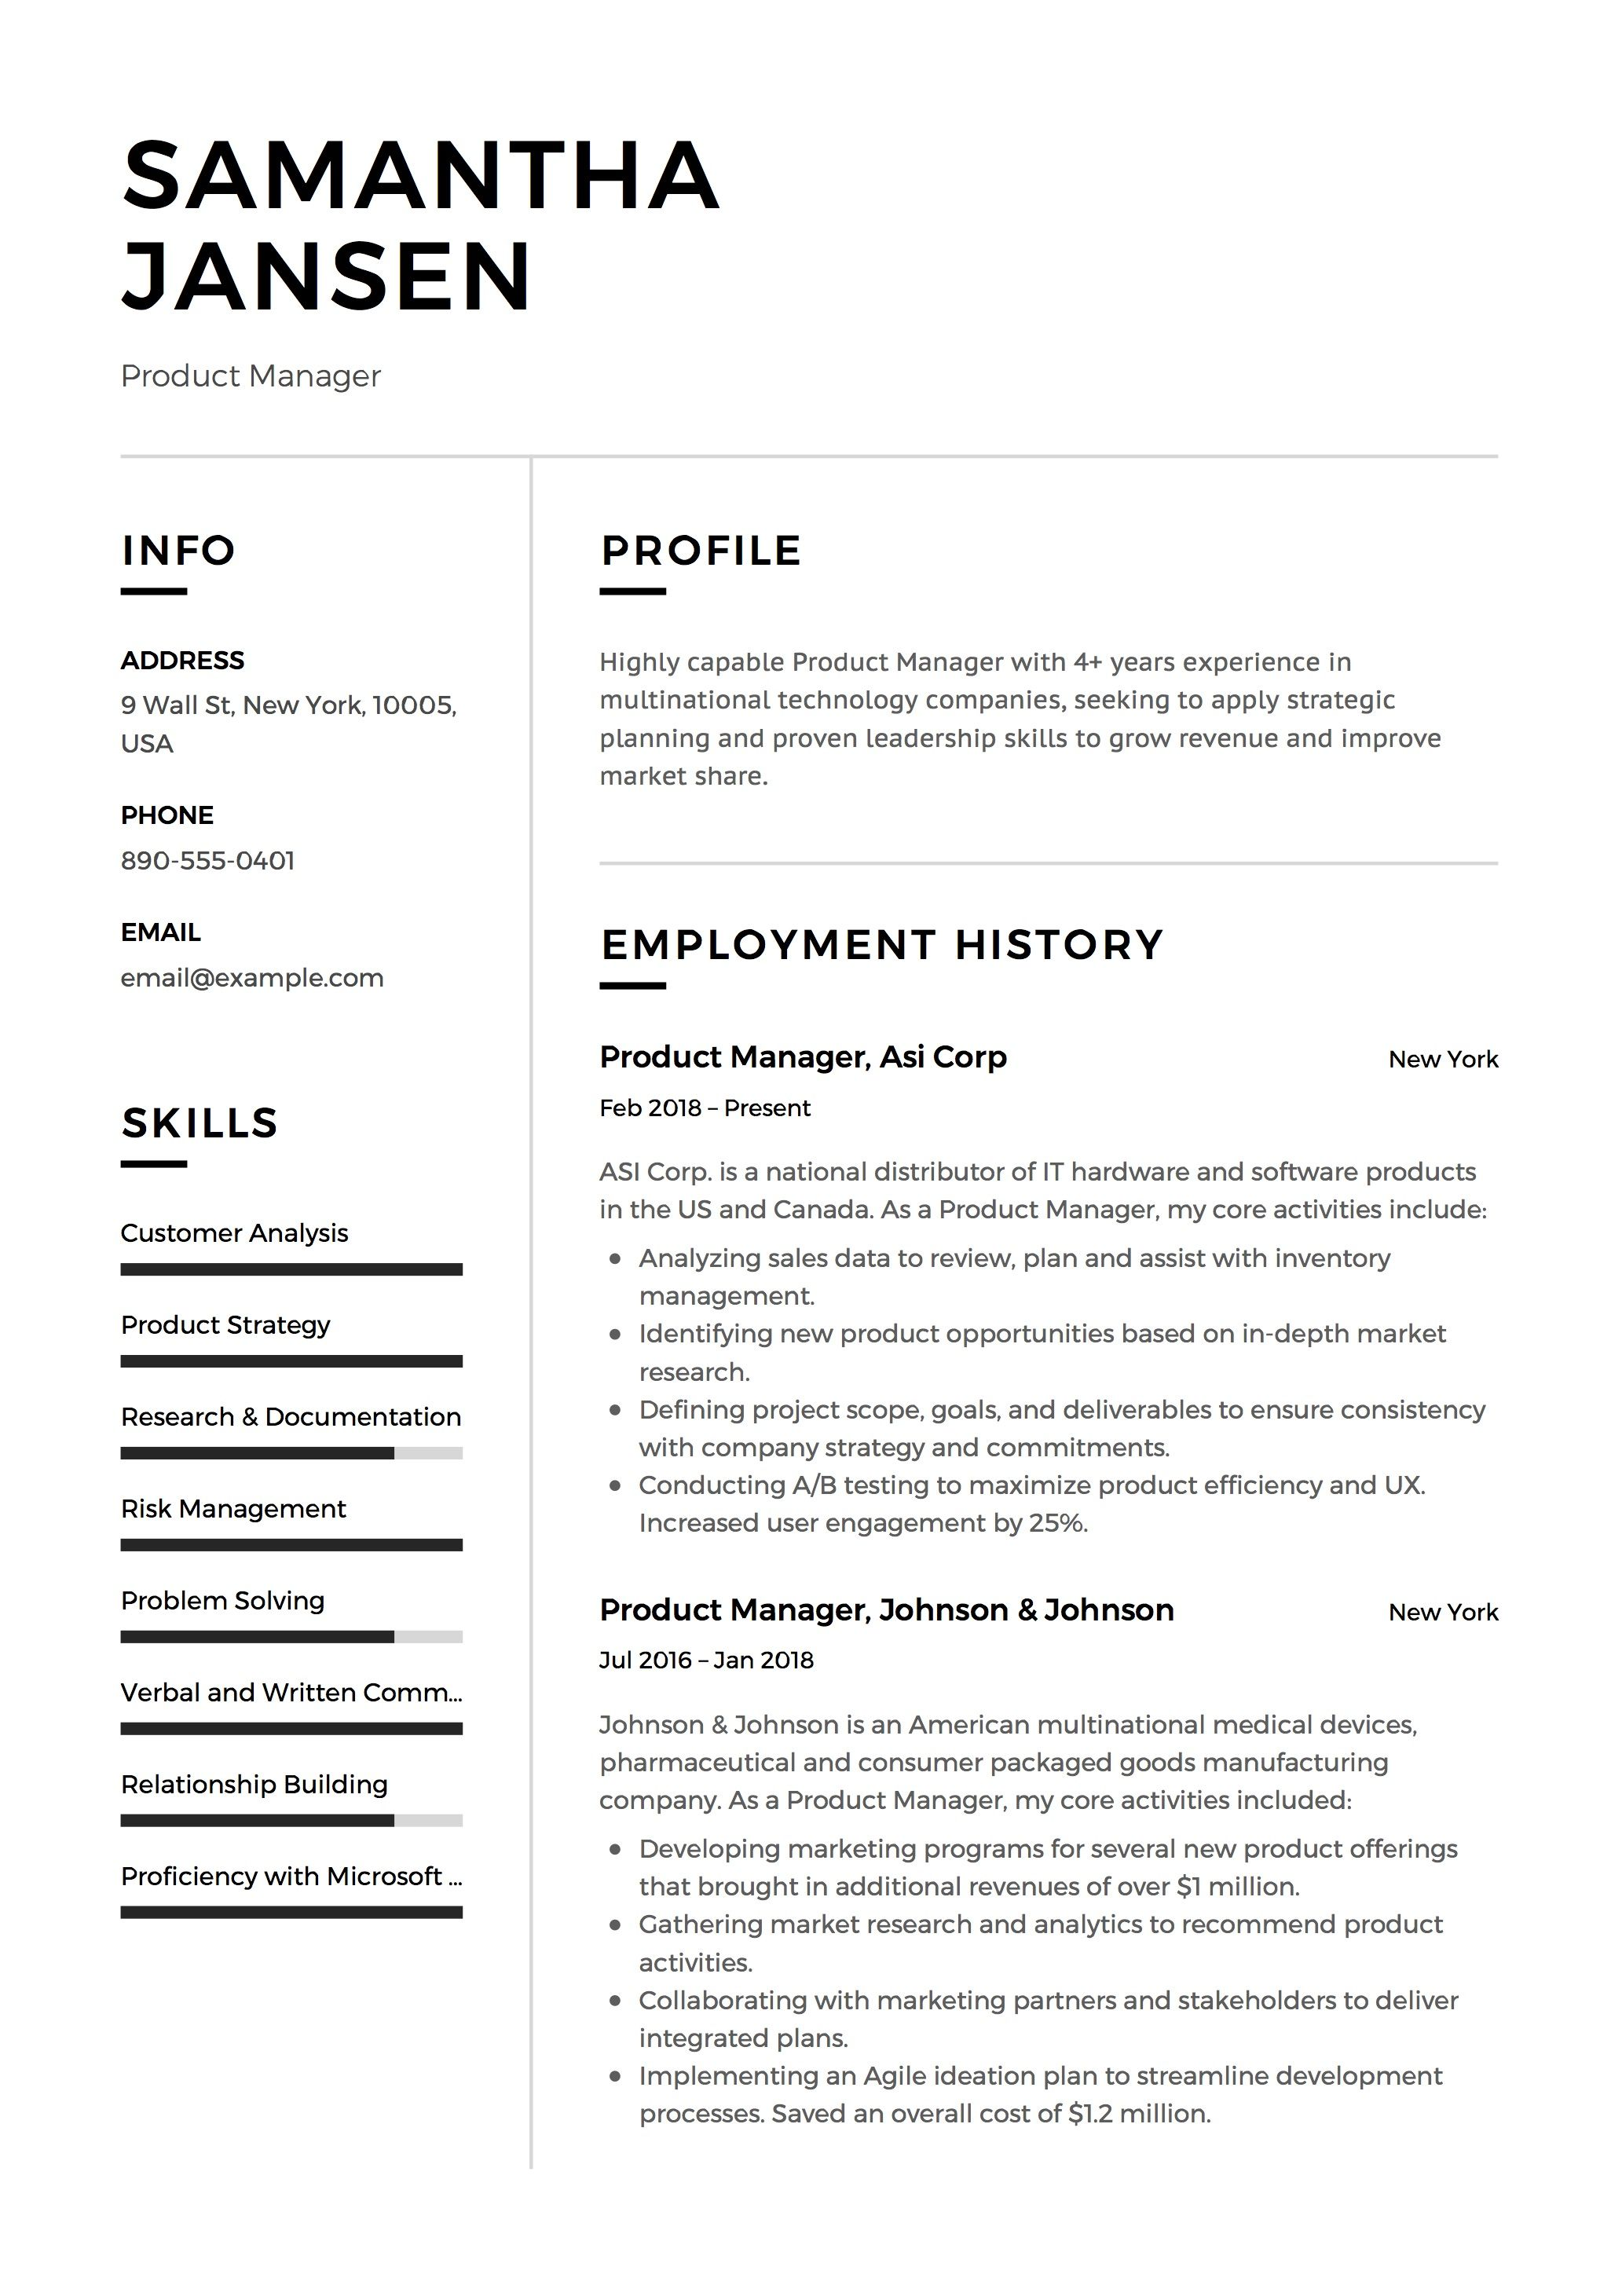 Product Manager Resume Sample, Template, Example, CV, Formal ...